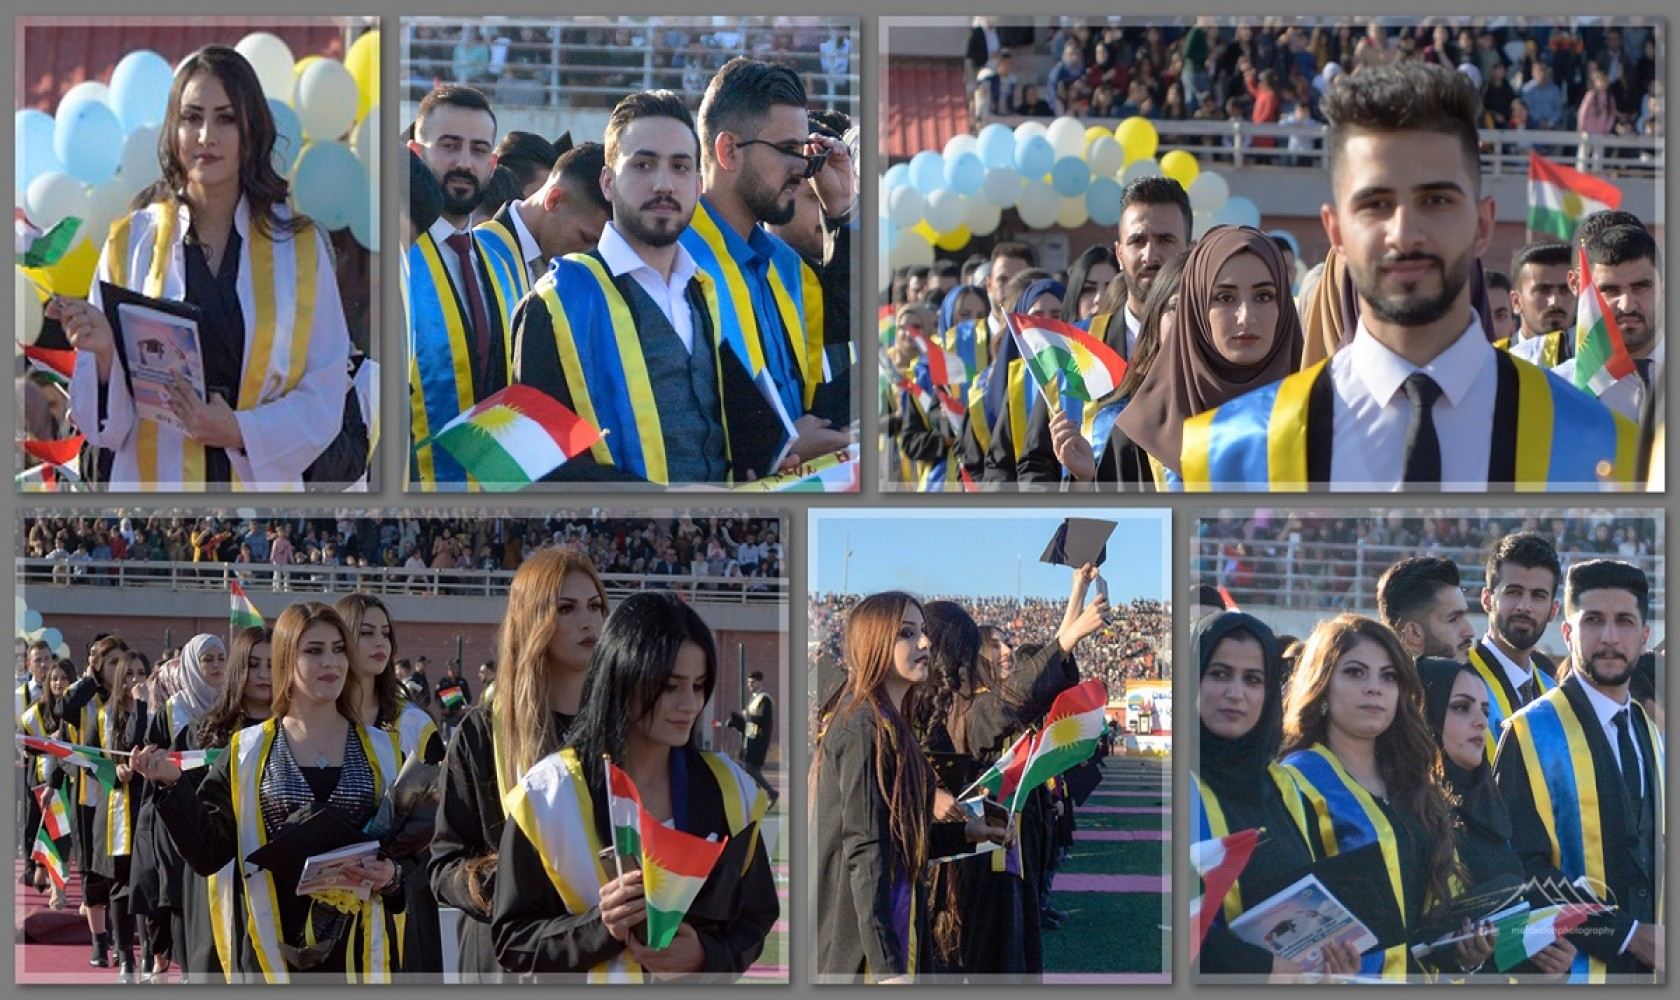 The 9th Commencement Ceremony of the University of Zakho